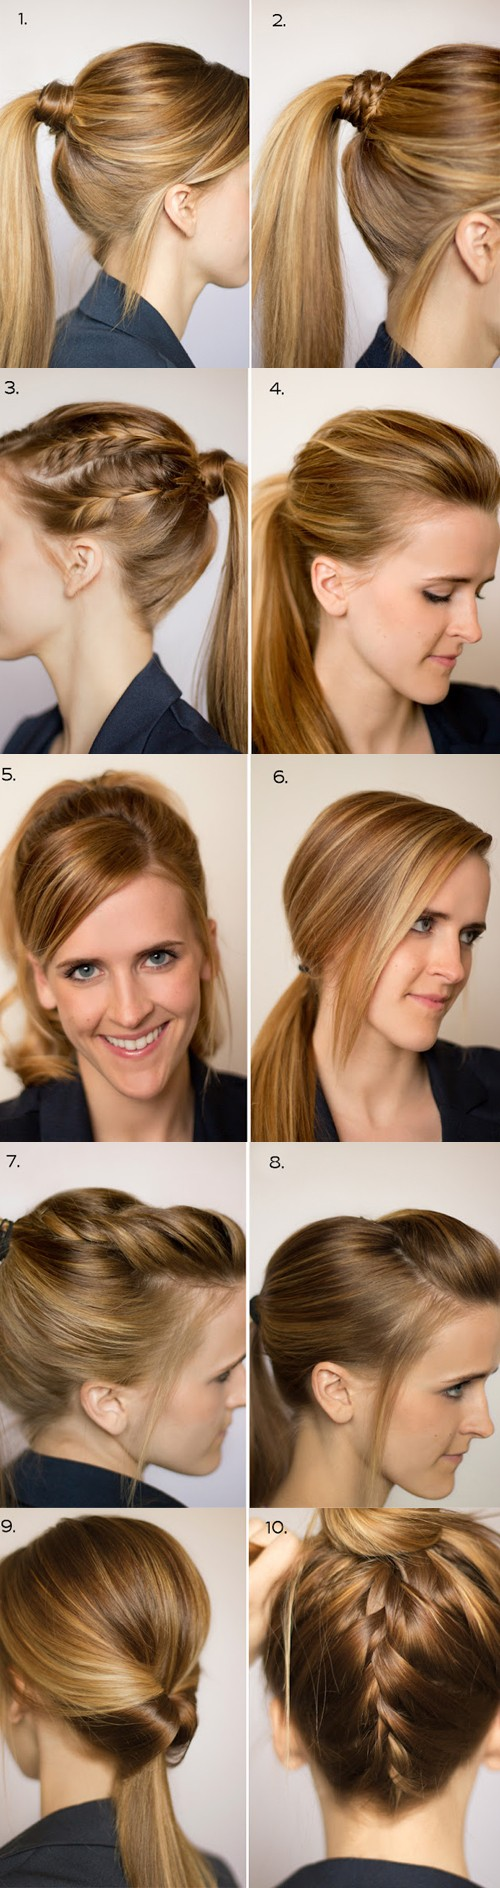 10 Different Ways To Wear A Ponytail Hair Styles Hair Beauty Work Hairstyles